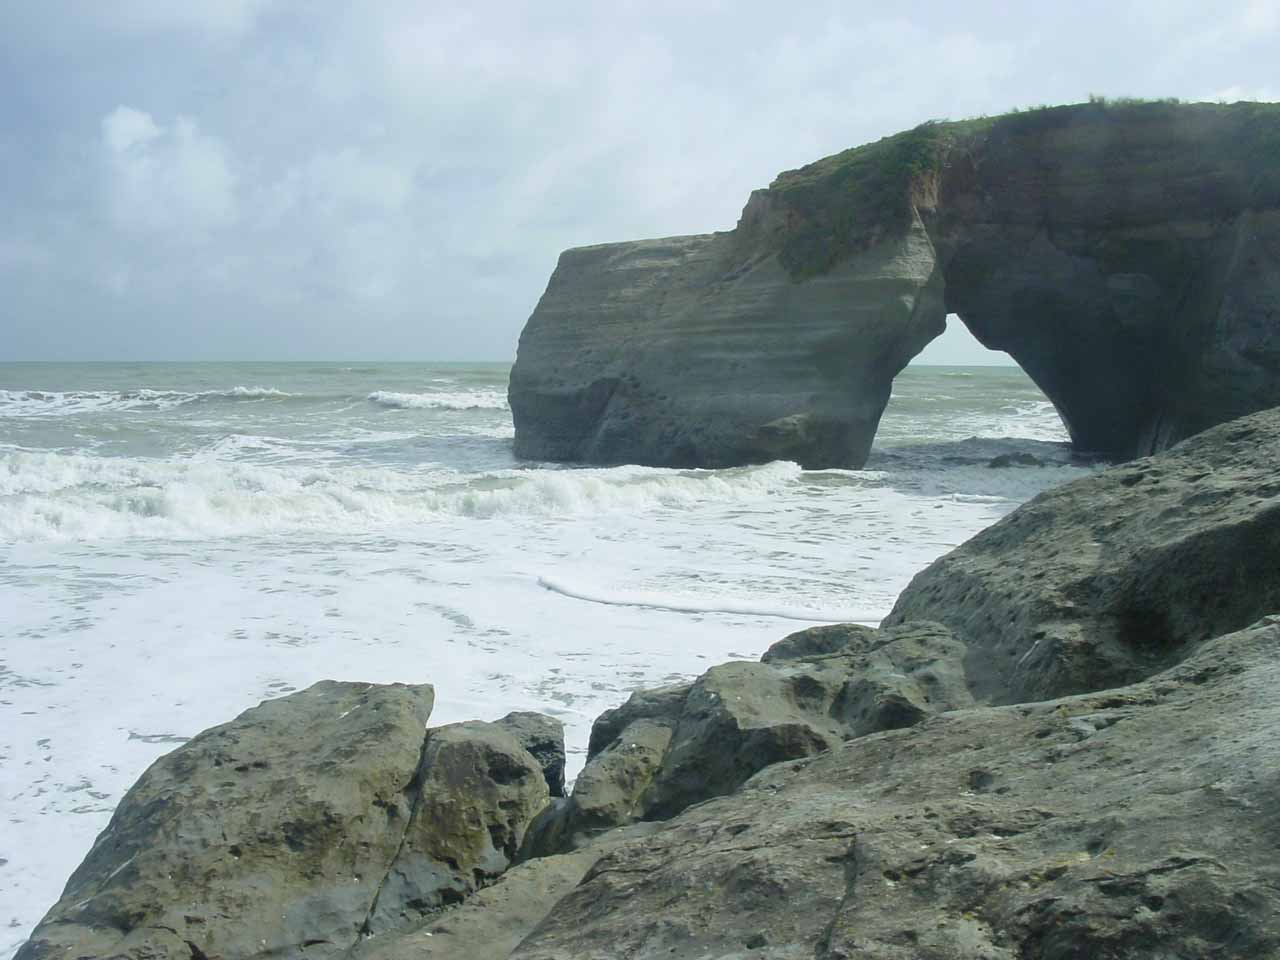 Back in November 2004, after visiting Dawson Falls, we made a quick detour to see Waverley Beach and the Waverley Arch. It was very peaceful and calm as Julie and I were the only ones here at the time